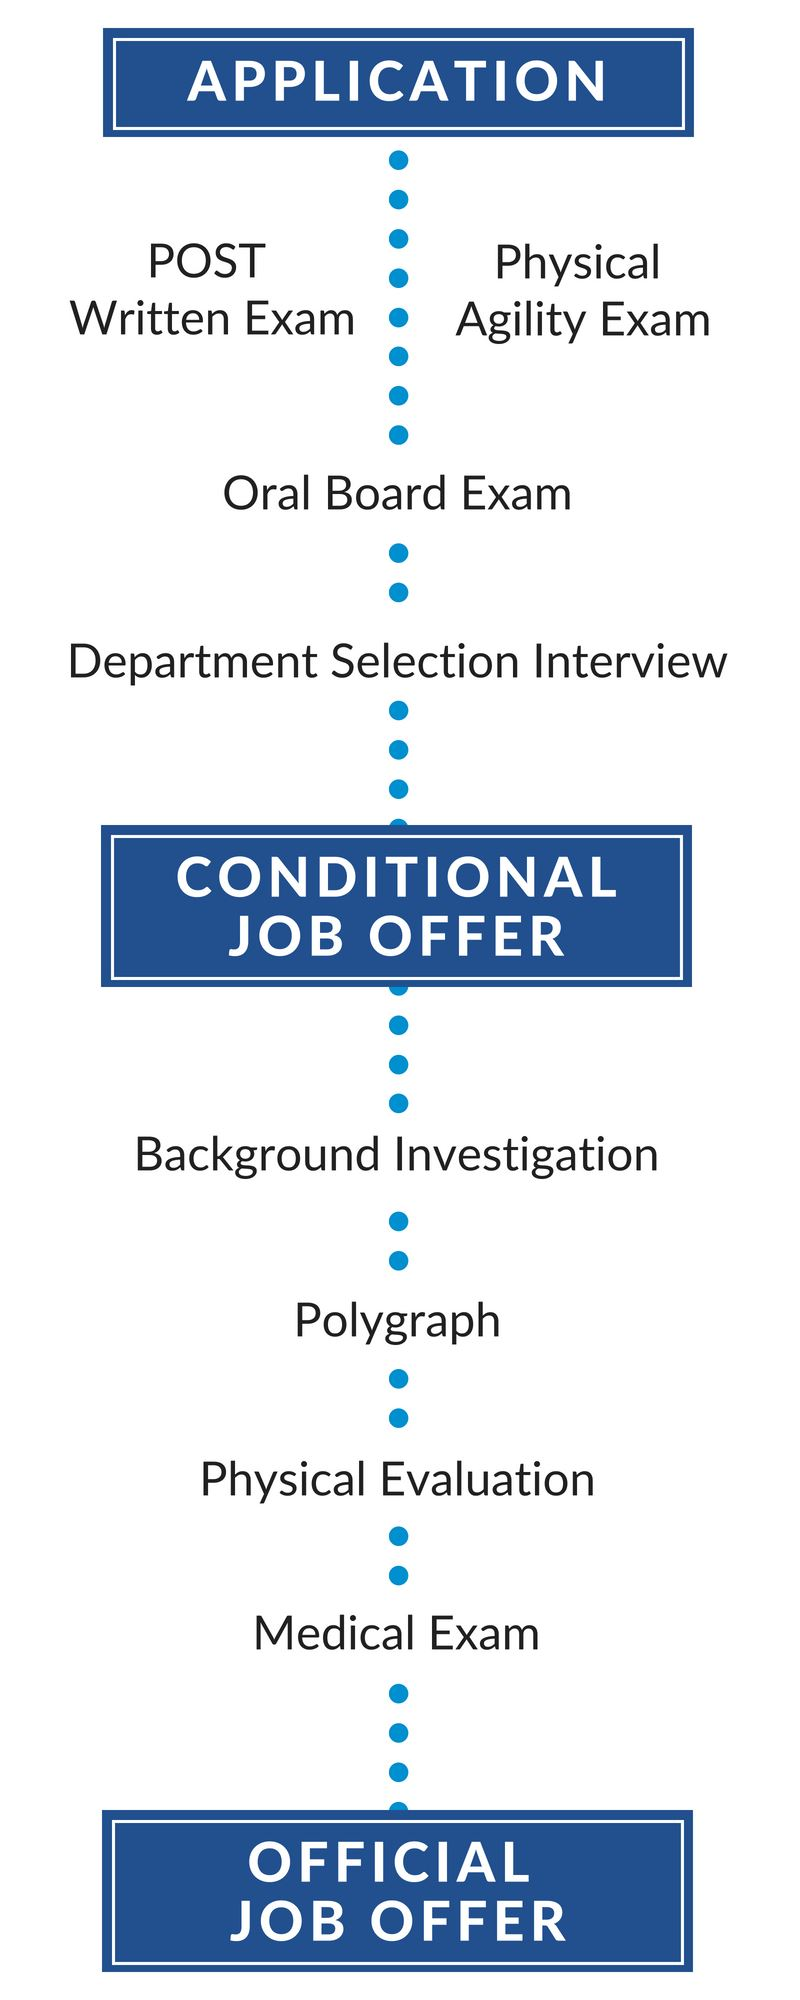 Police Department Hiring Process flow chart